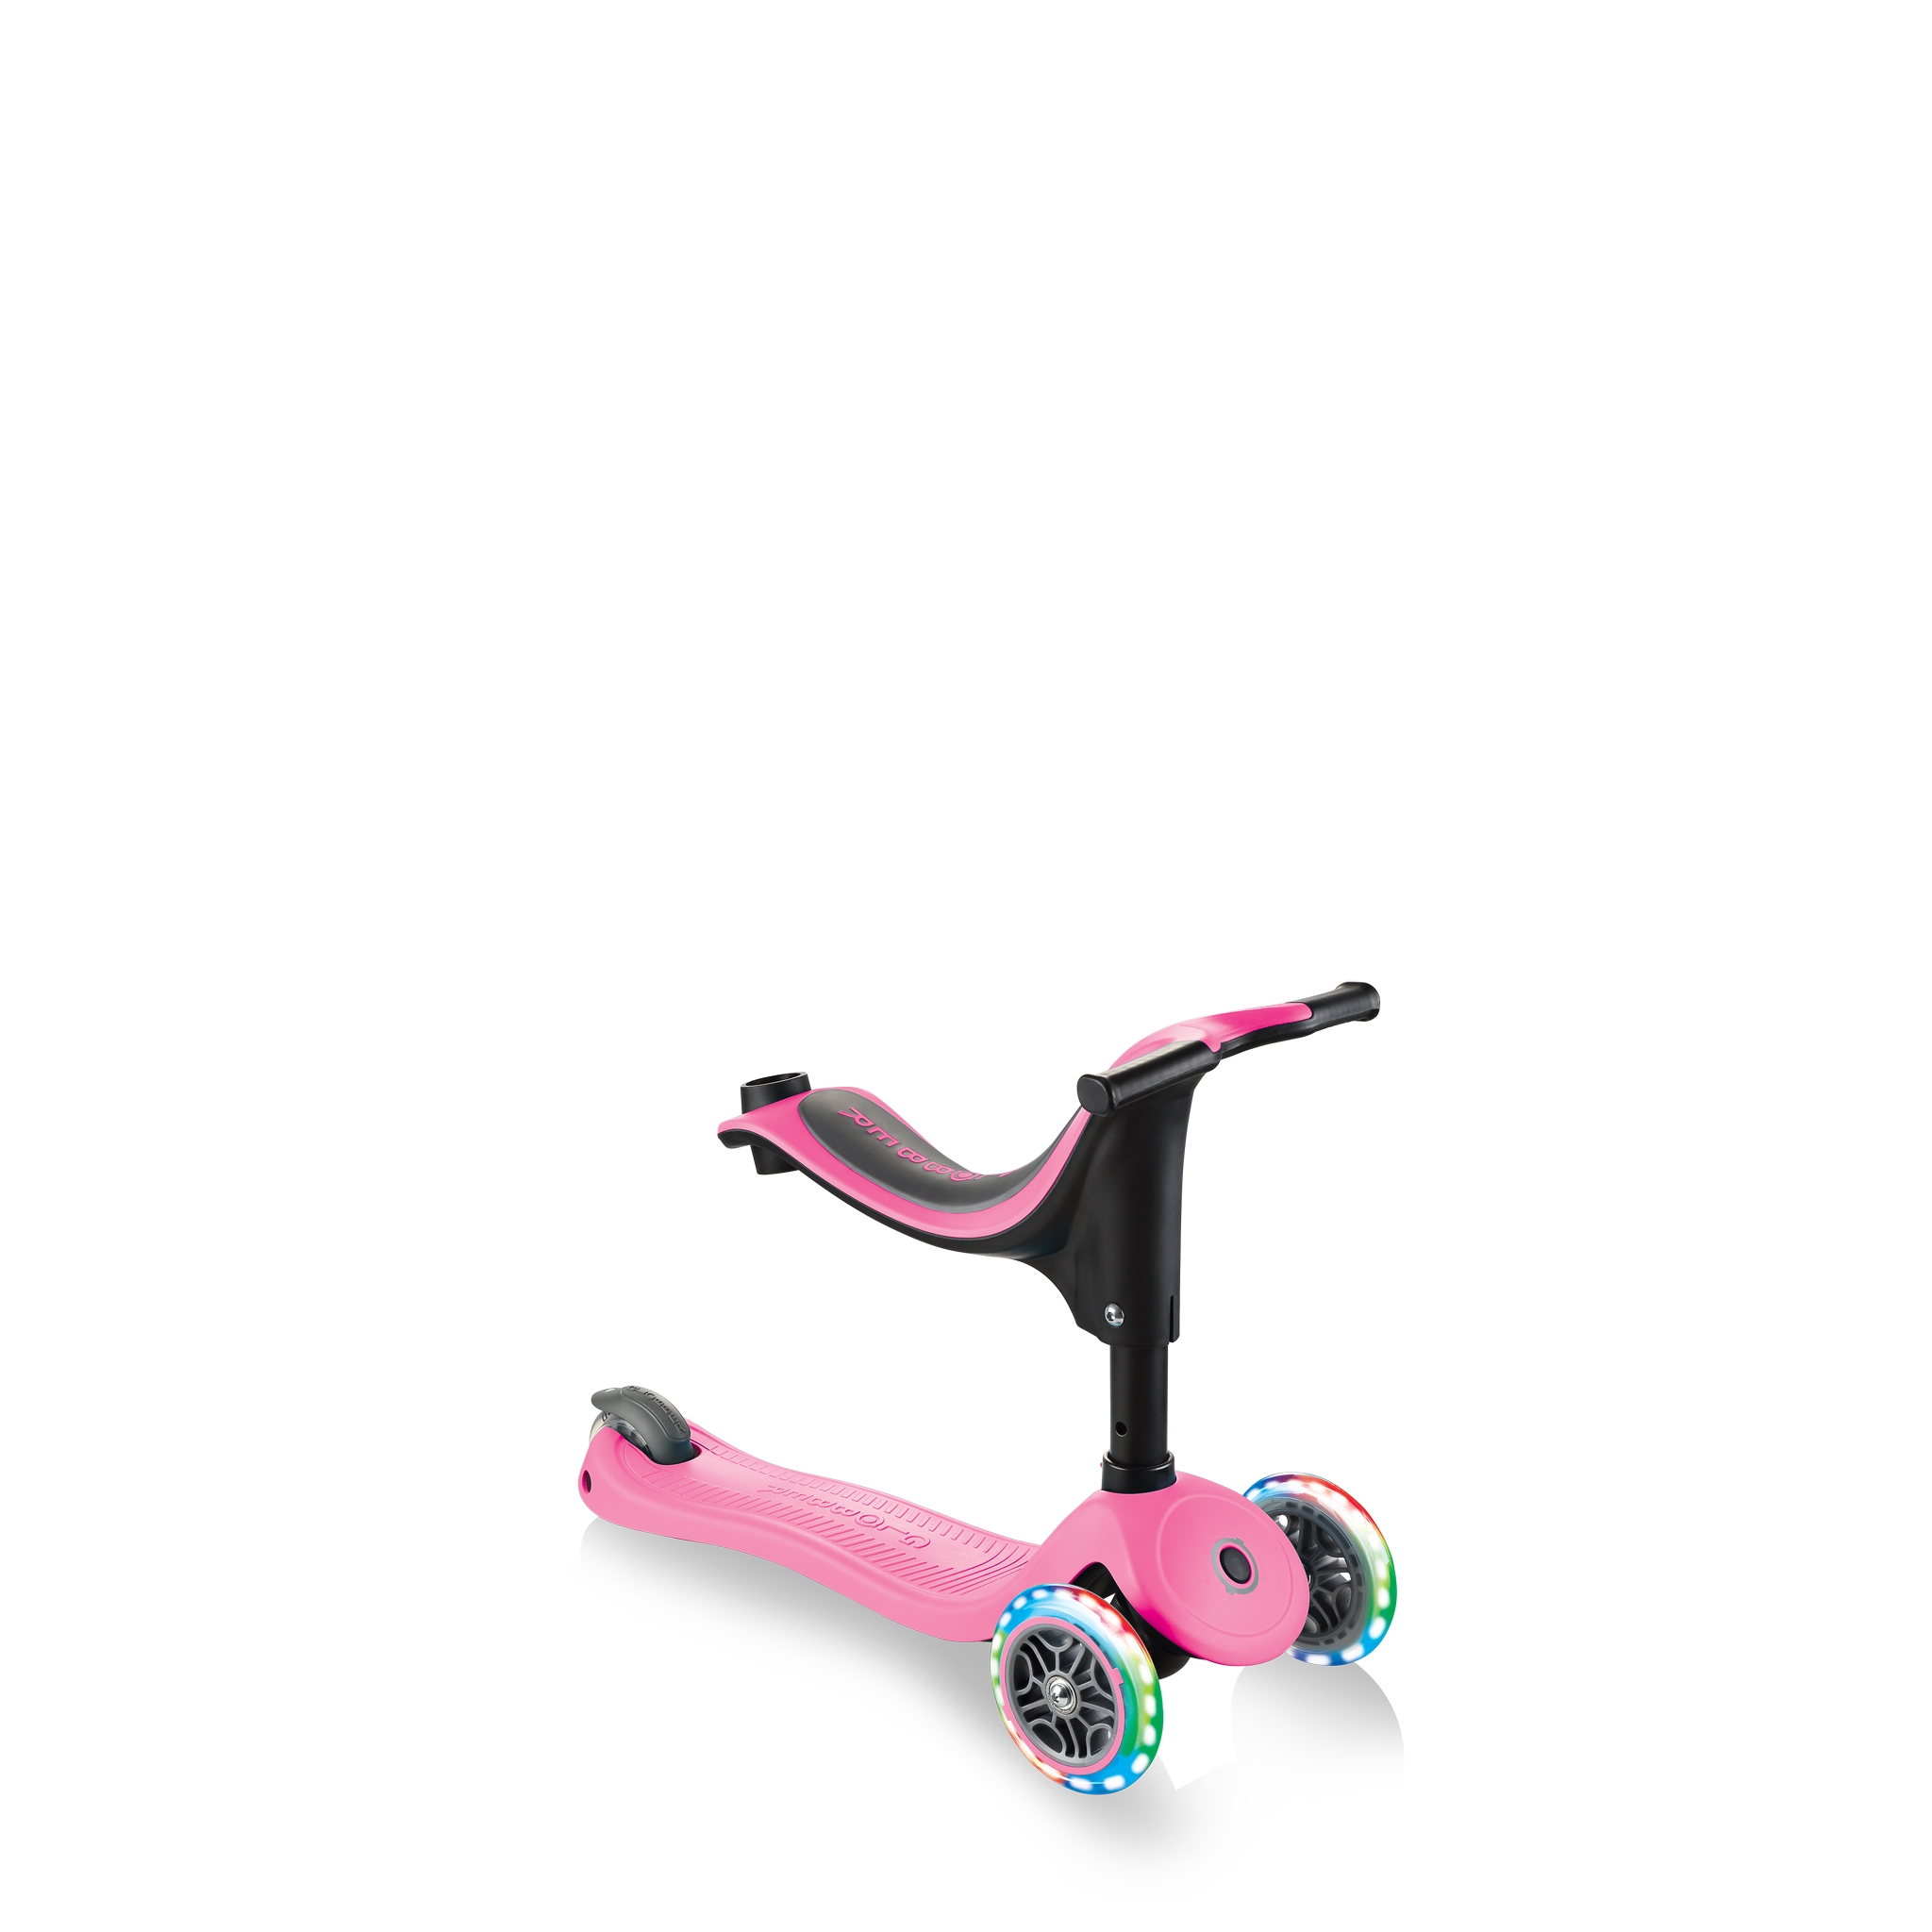 GO-UP-SPORTY-PLUS-LIGHTS-scooter-with-seat-walking-bike-mode_deep-pink 2